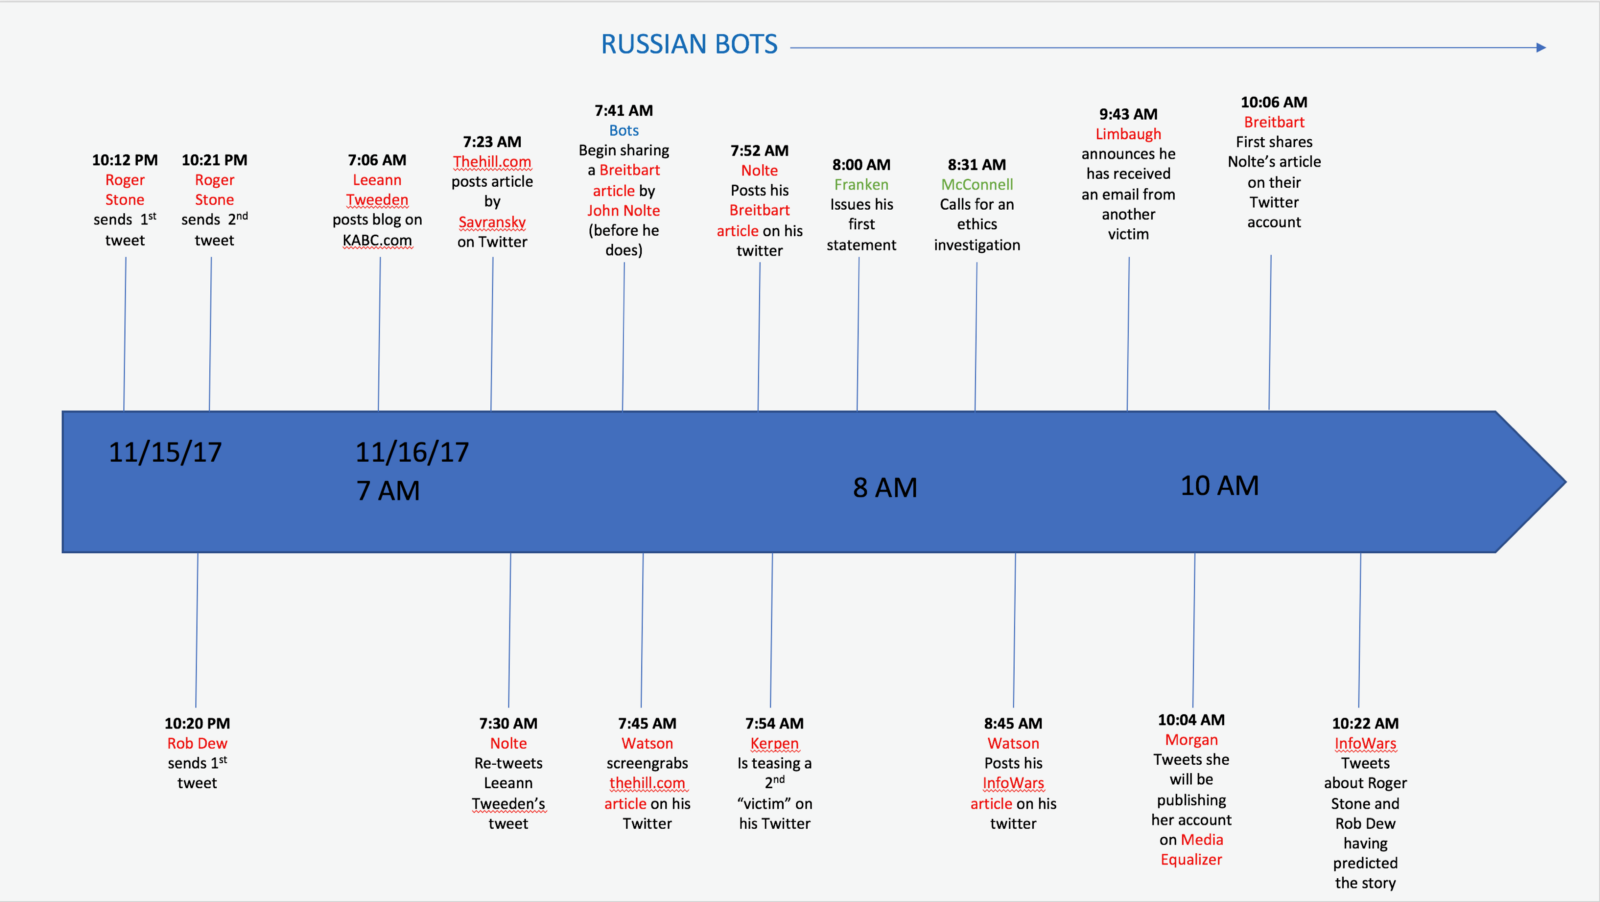 Correct chronology in Russia